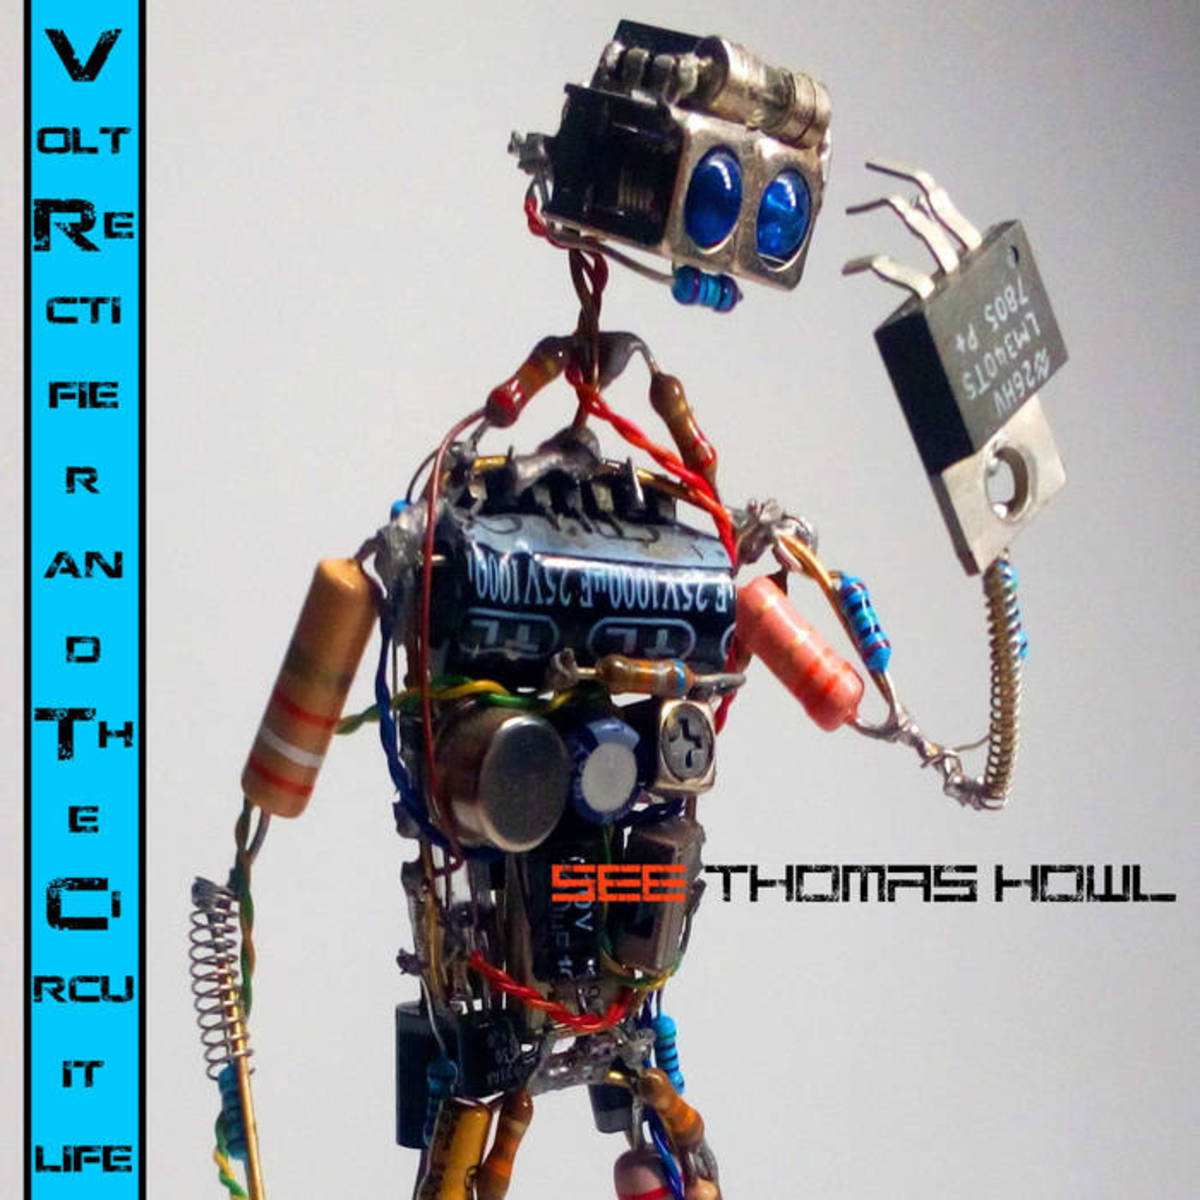 synth-ep-review-volt-rectifier-and-the-circuit-of-life-by-see-thomas-howl